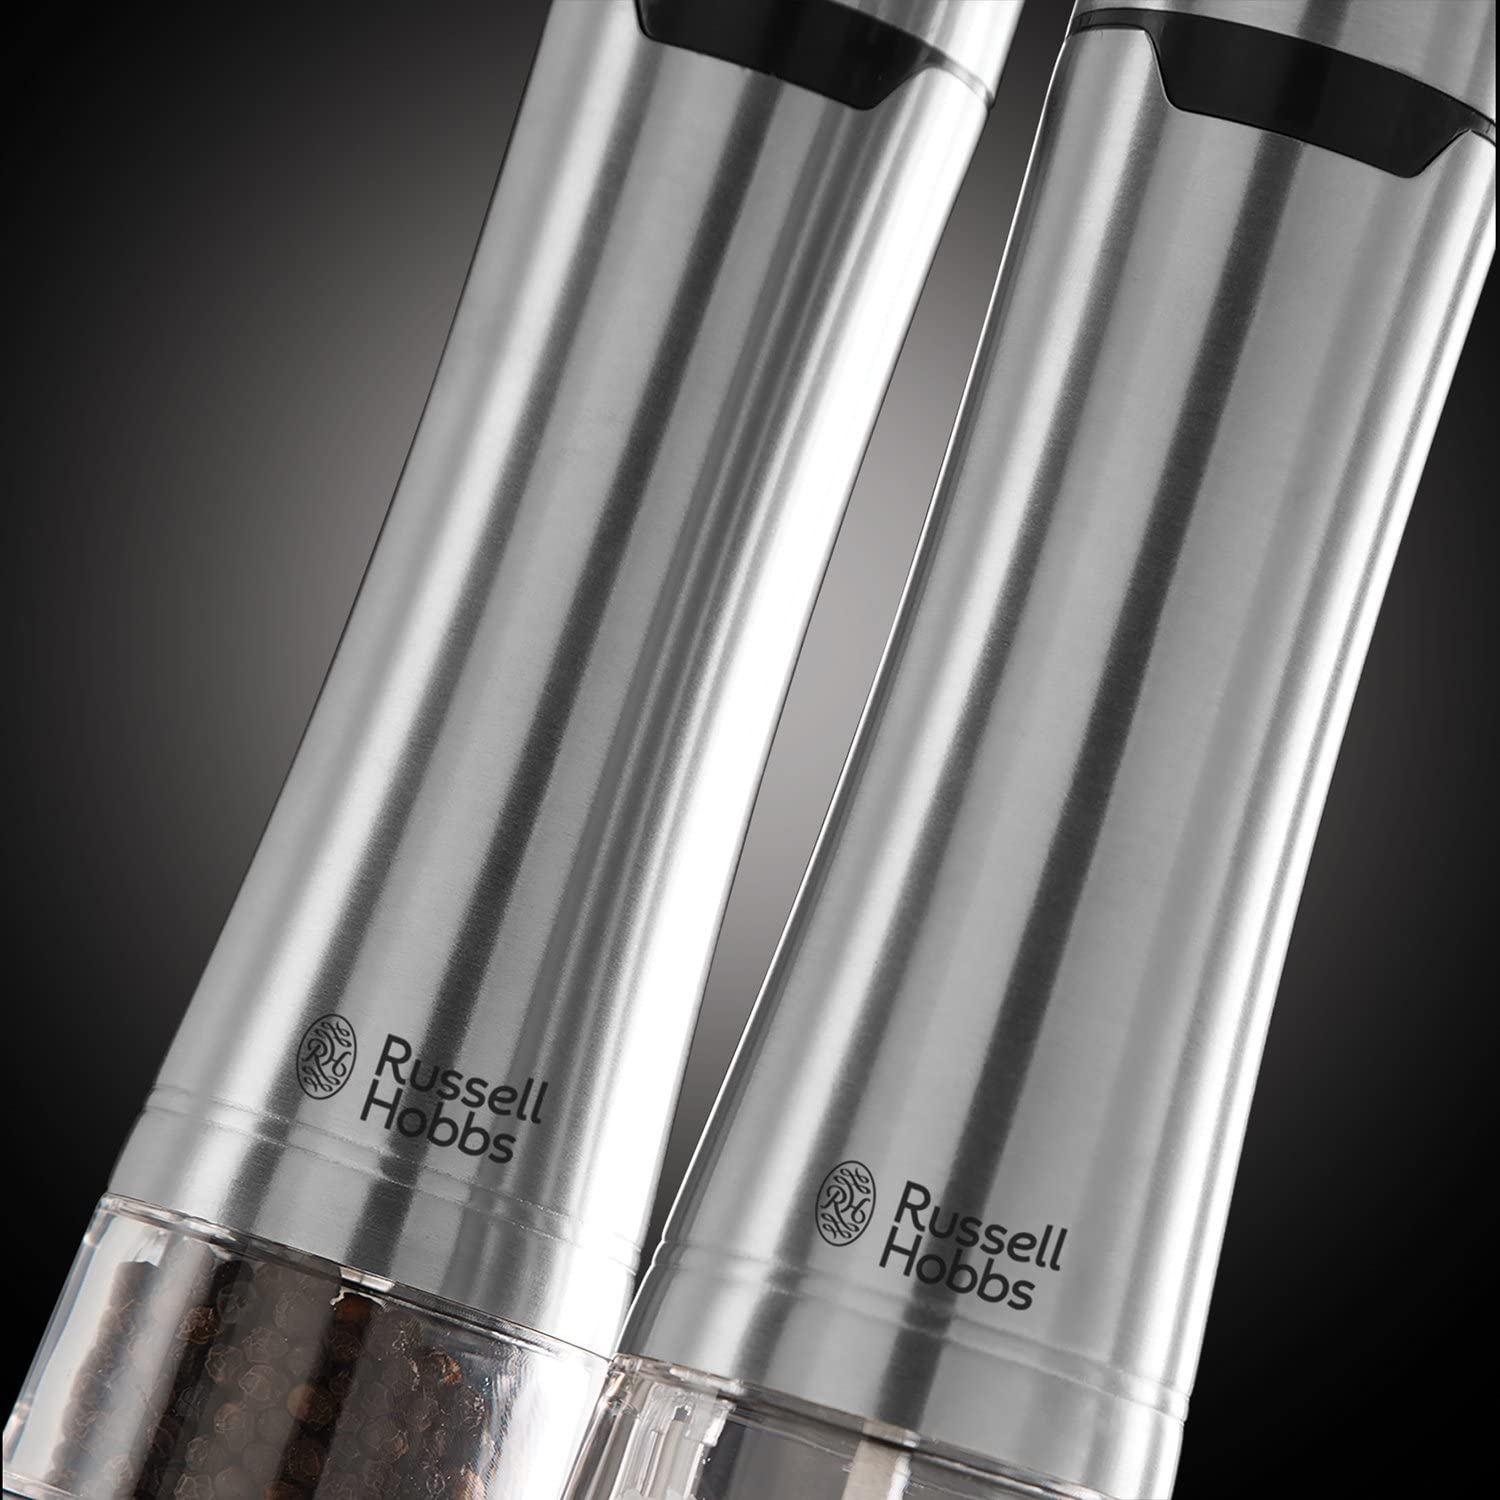 Russell Hobbs 23460-56  Stainless Steel Electric Salt /& Pepper Grinder Mill Set